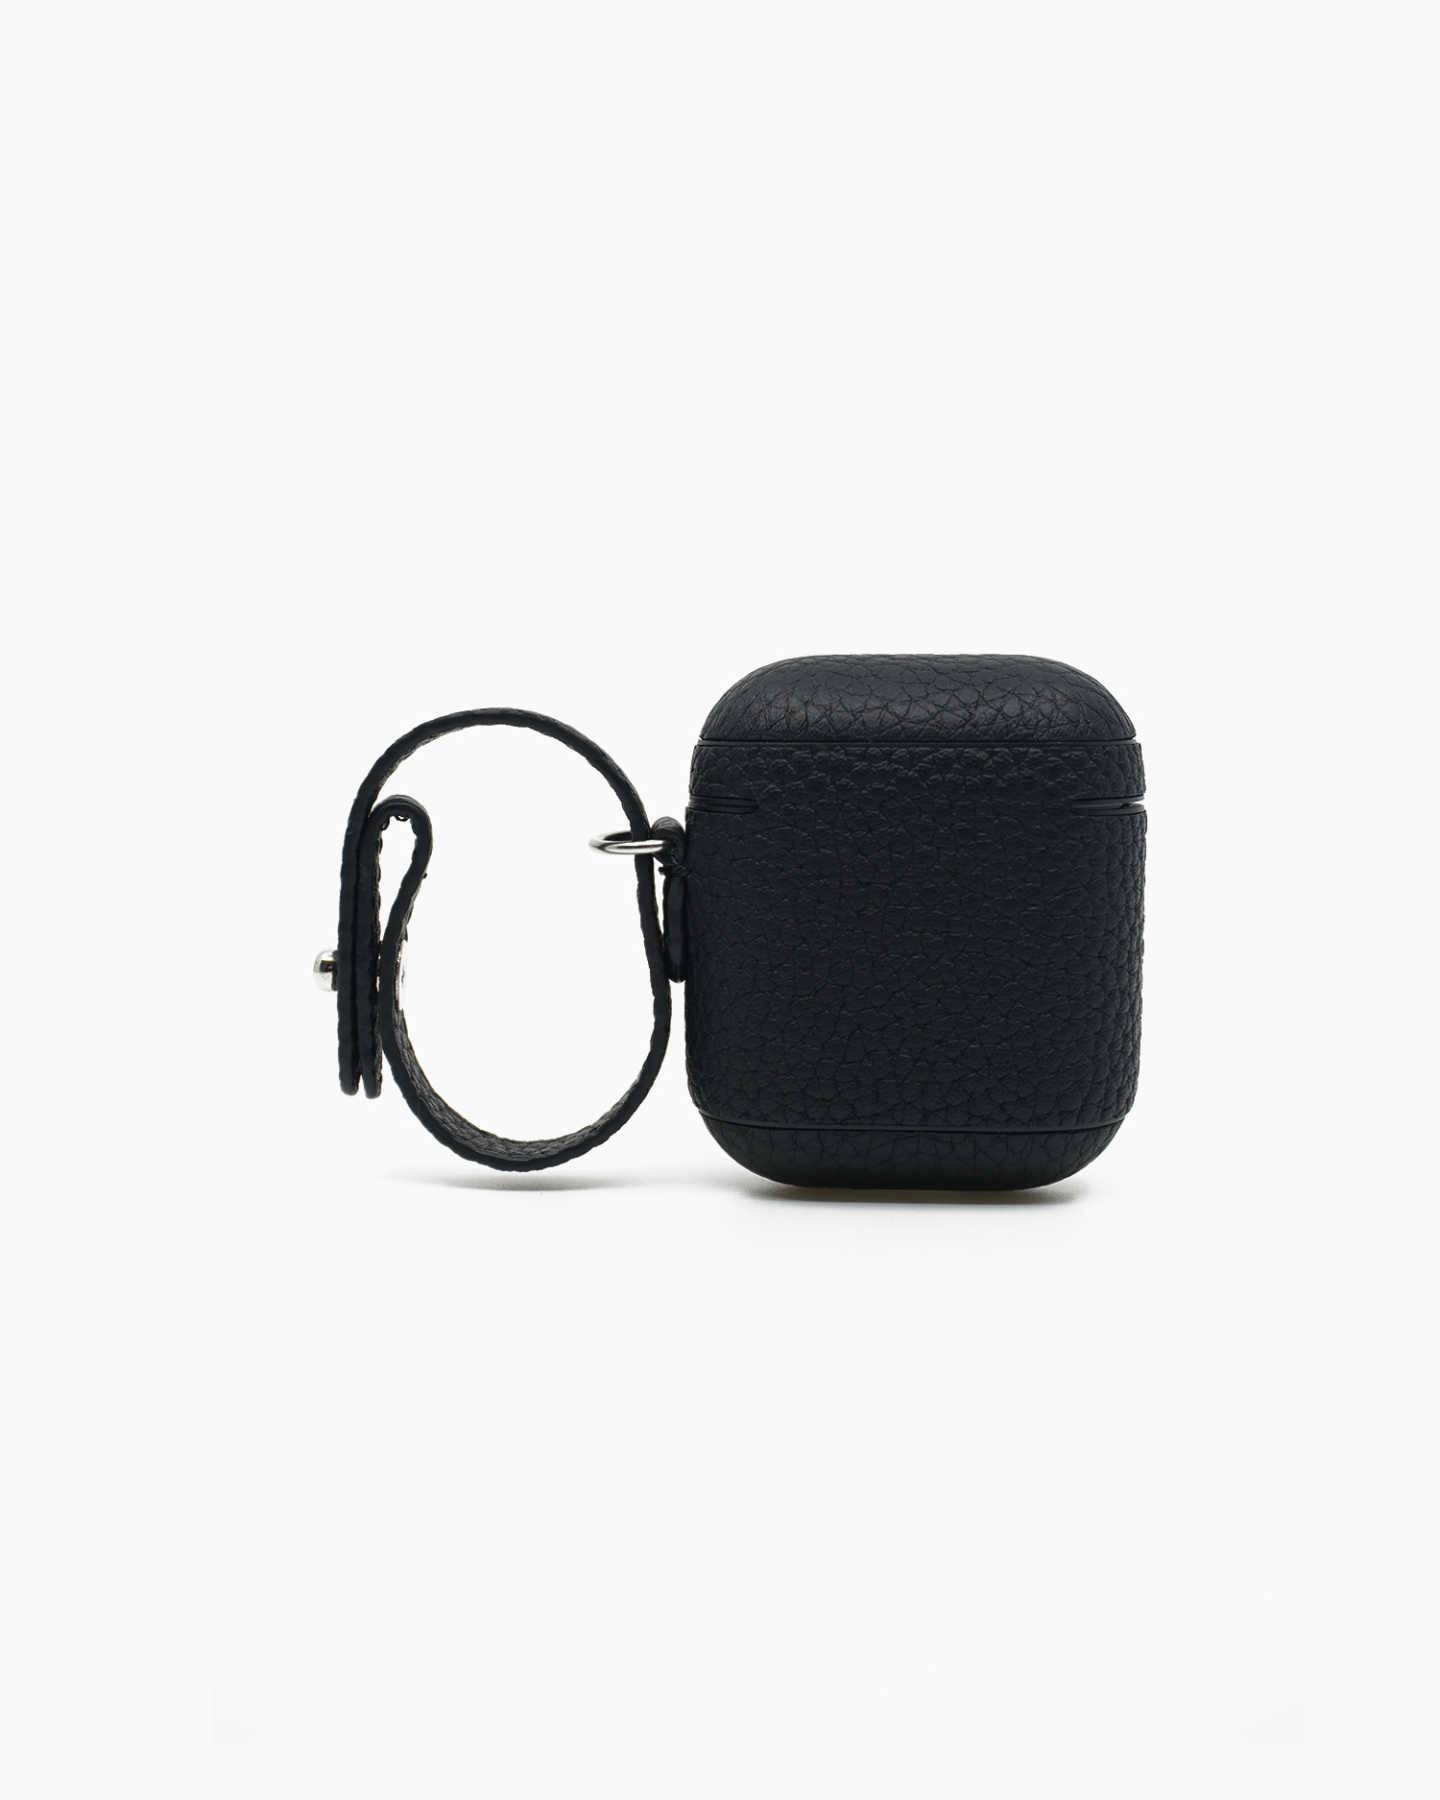 Premium Pebbled Leather AirPod Case - Black - 4